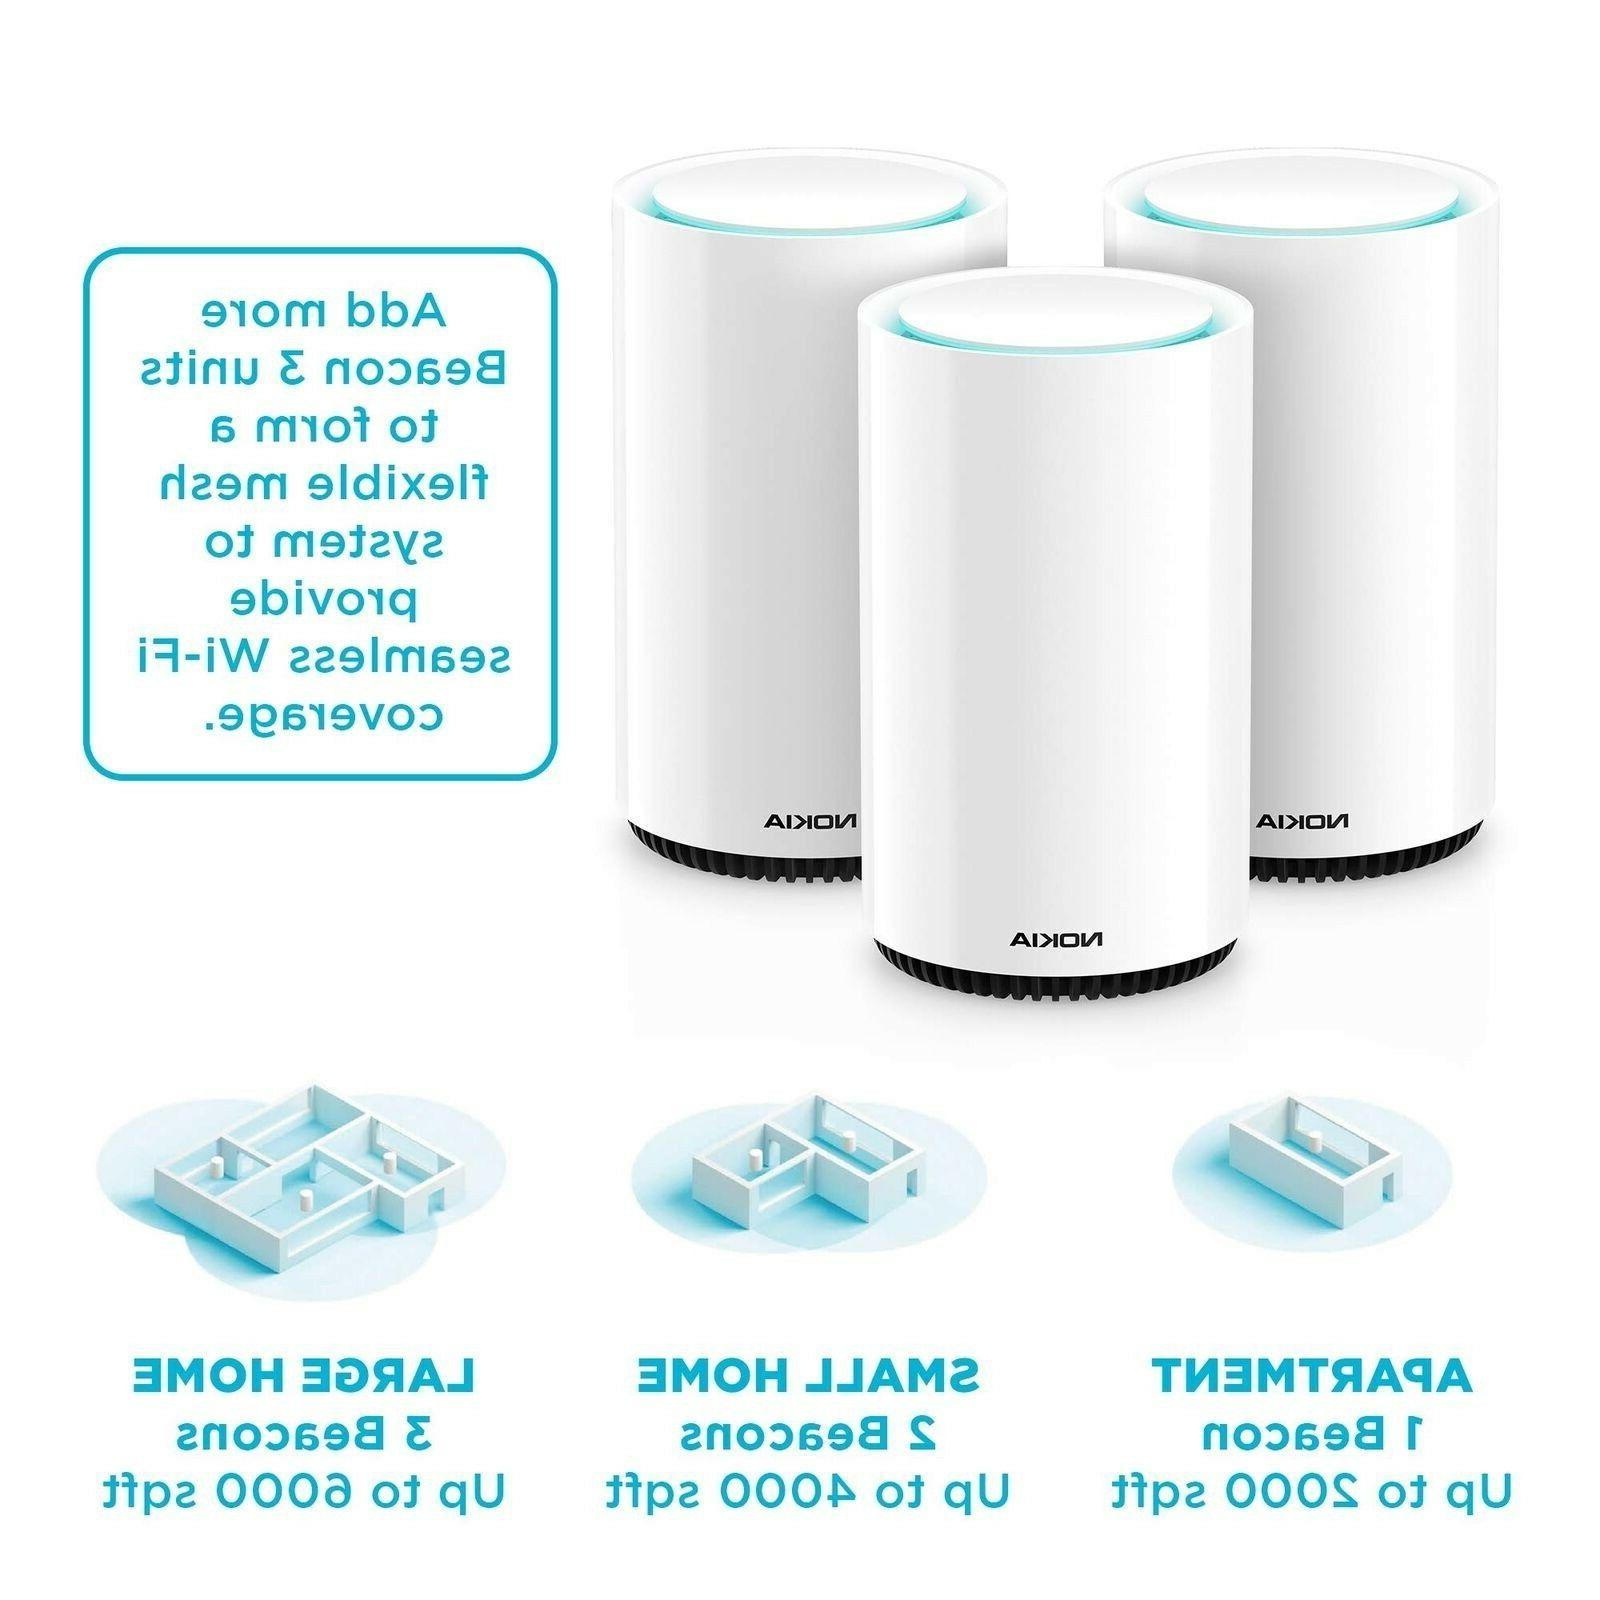 Nokia WiFi Beacon Mesh Router System Intelligent, Home WiFi